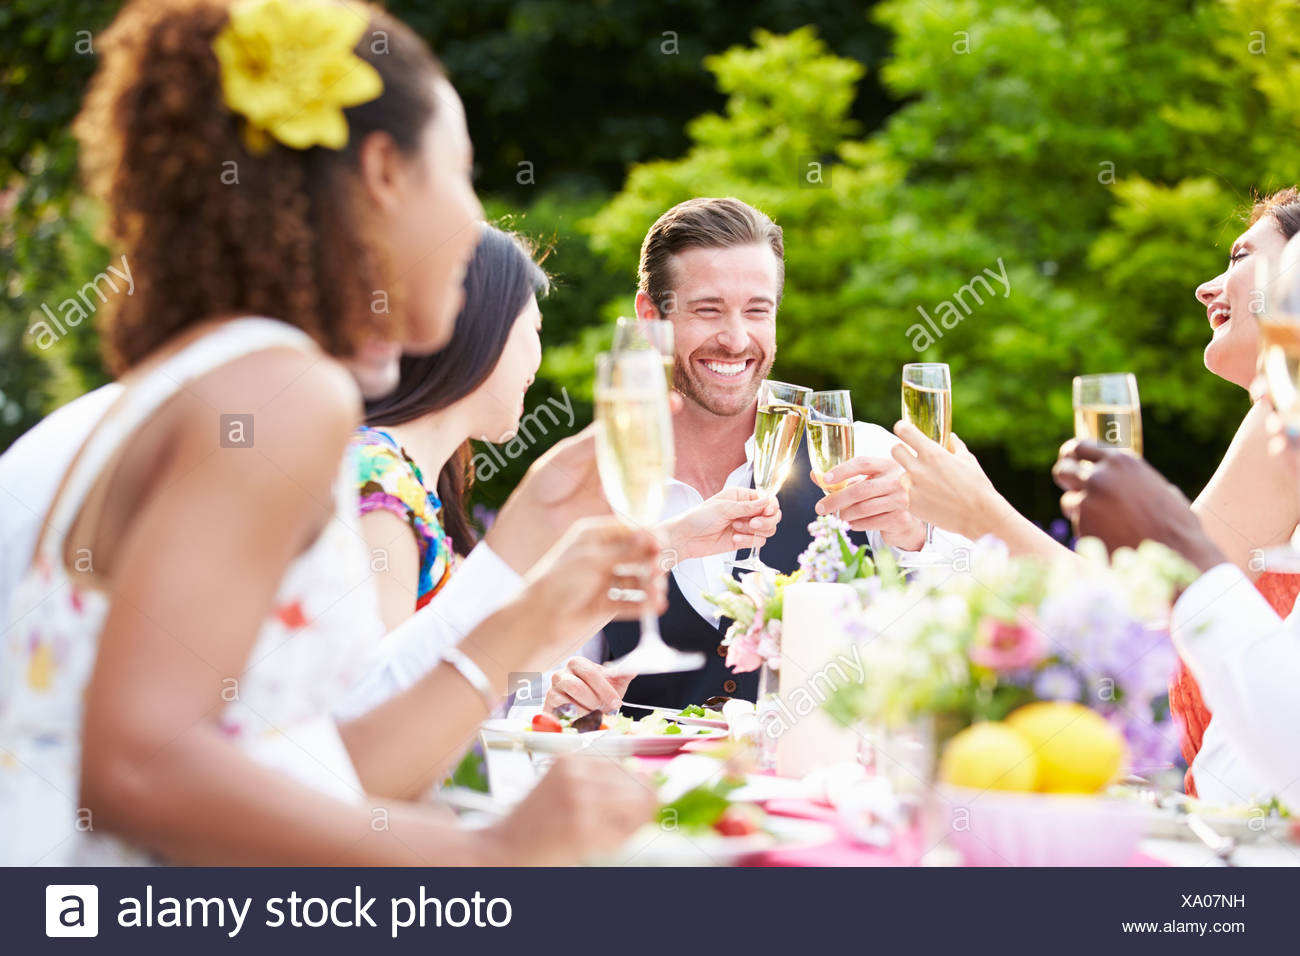 Group Of Friends Enjoying Outdoor Dinner Party Stock Photo